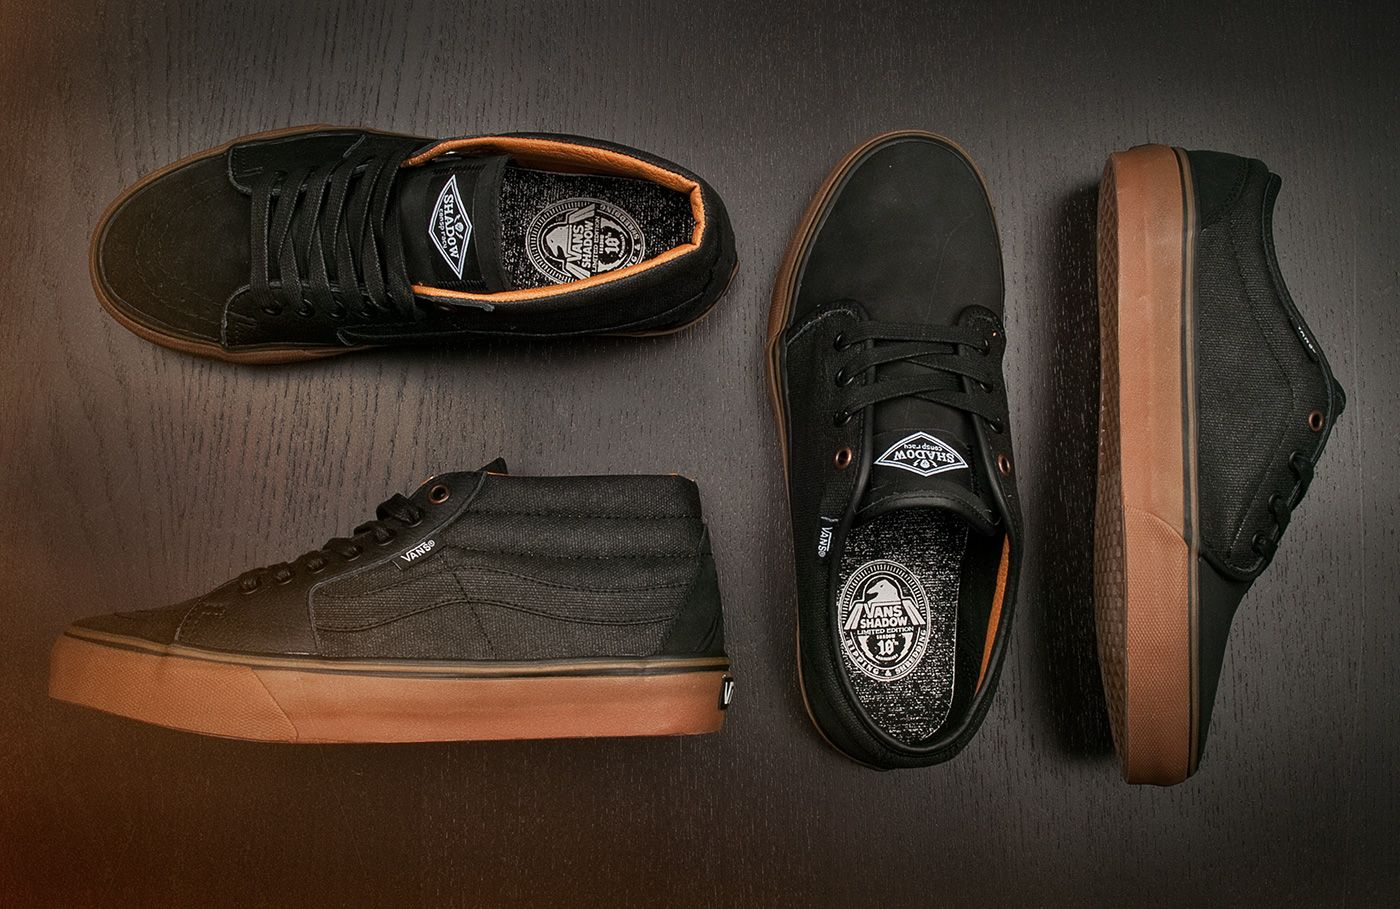 Shadow x Vans 10th Anniversary Shoes